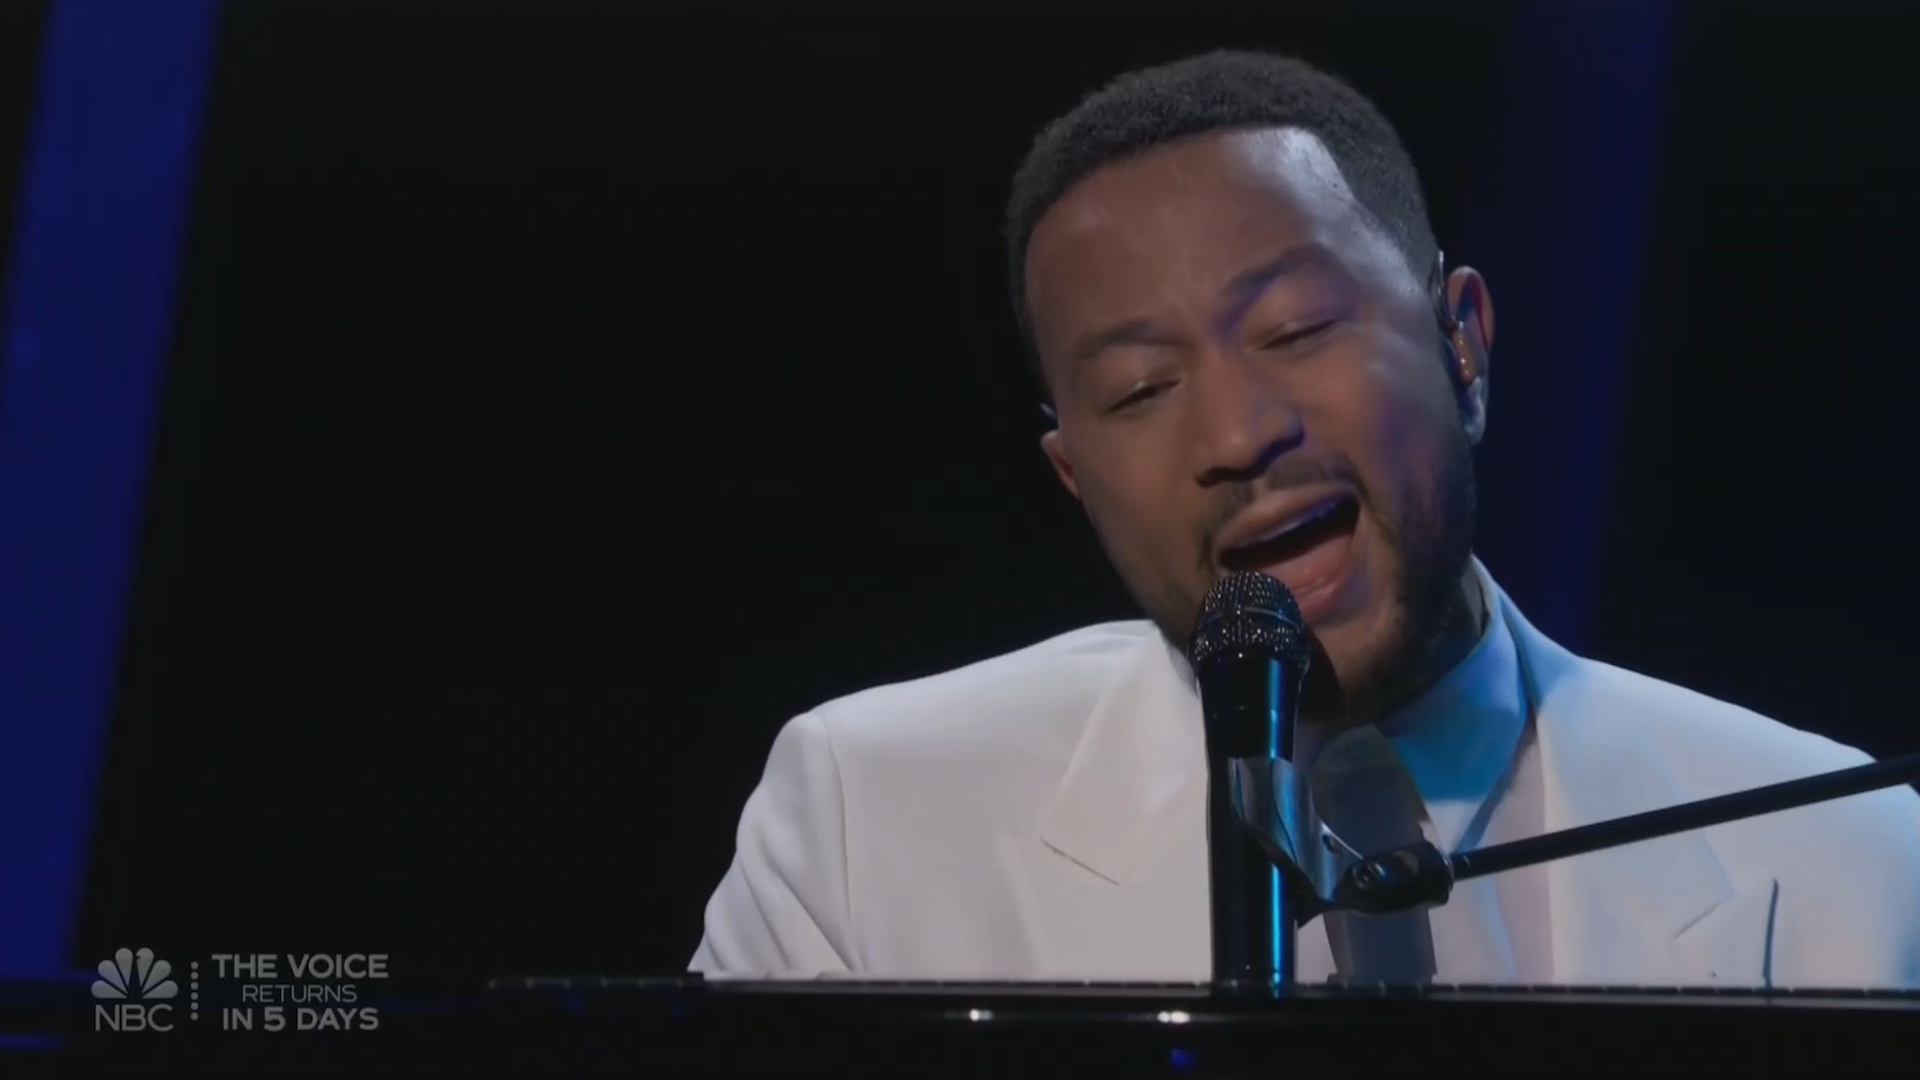 John Legend dedicates emotional Billboard Music Awards performance to wife Chrissy Teigen two weeks after pregnancy loss